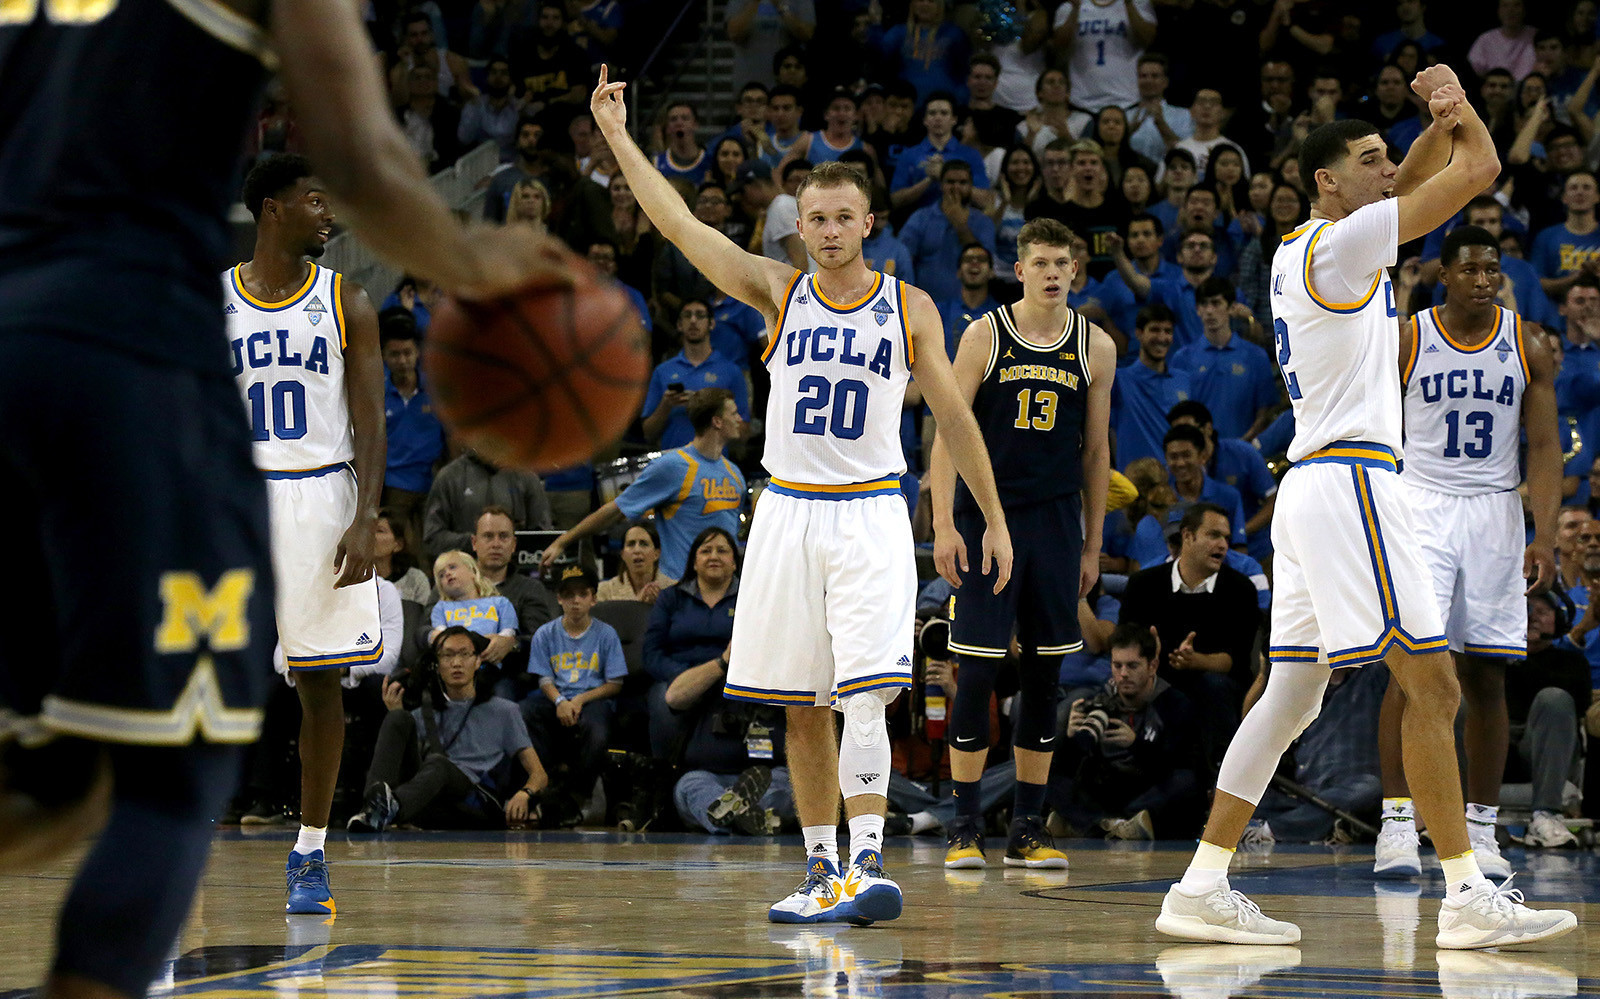 Bryce Alford stuck out his right hand high into the air and curled his  fingers to the roaring crowd. Higher … higher … Alford kept his hand  raised 34da65088